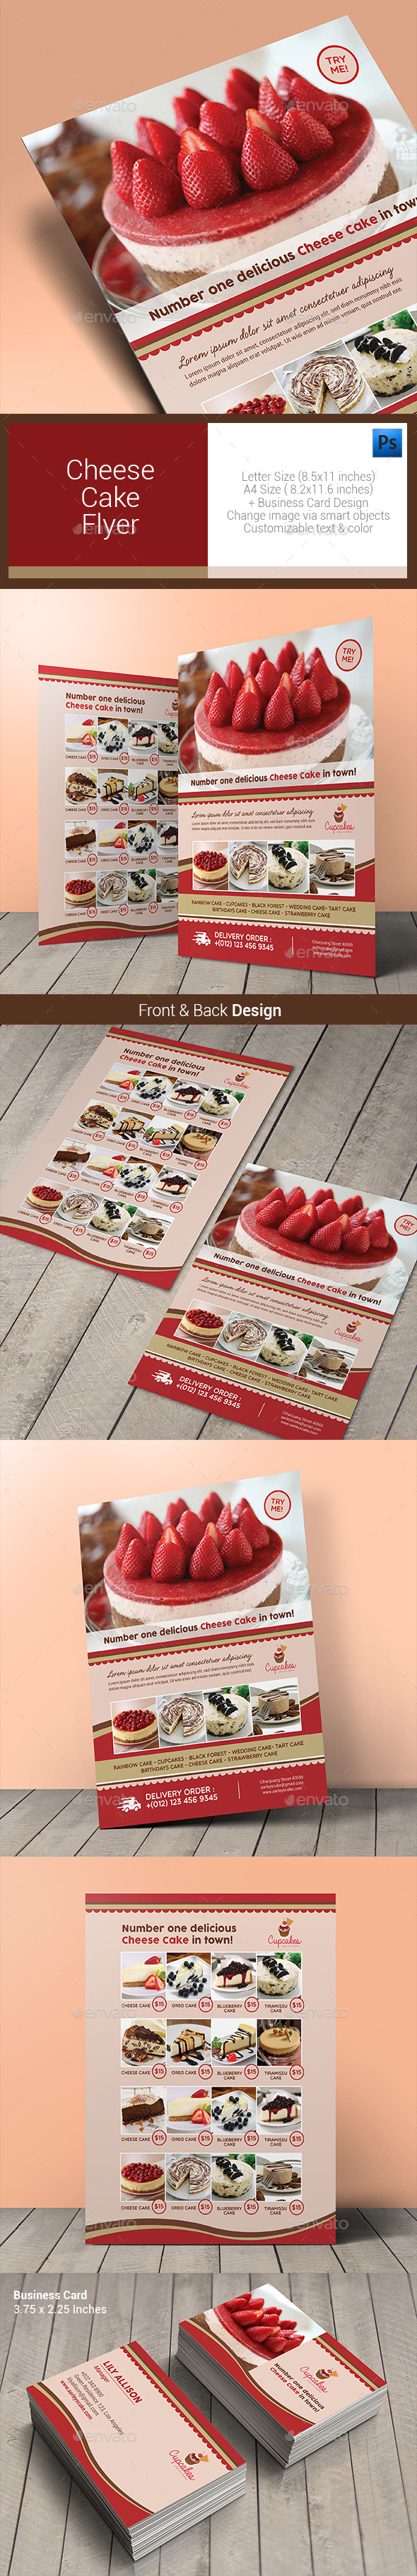 GraphicRiver Cheese Cake Menu Flyer 10640856